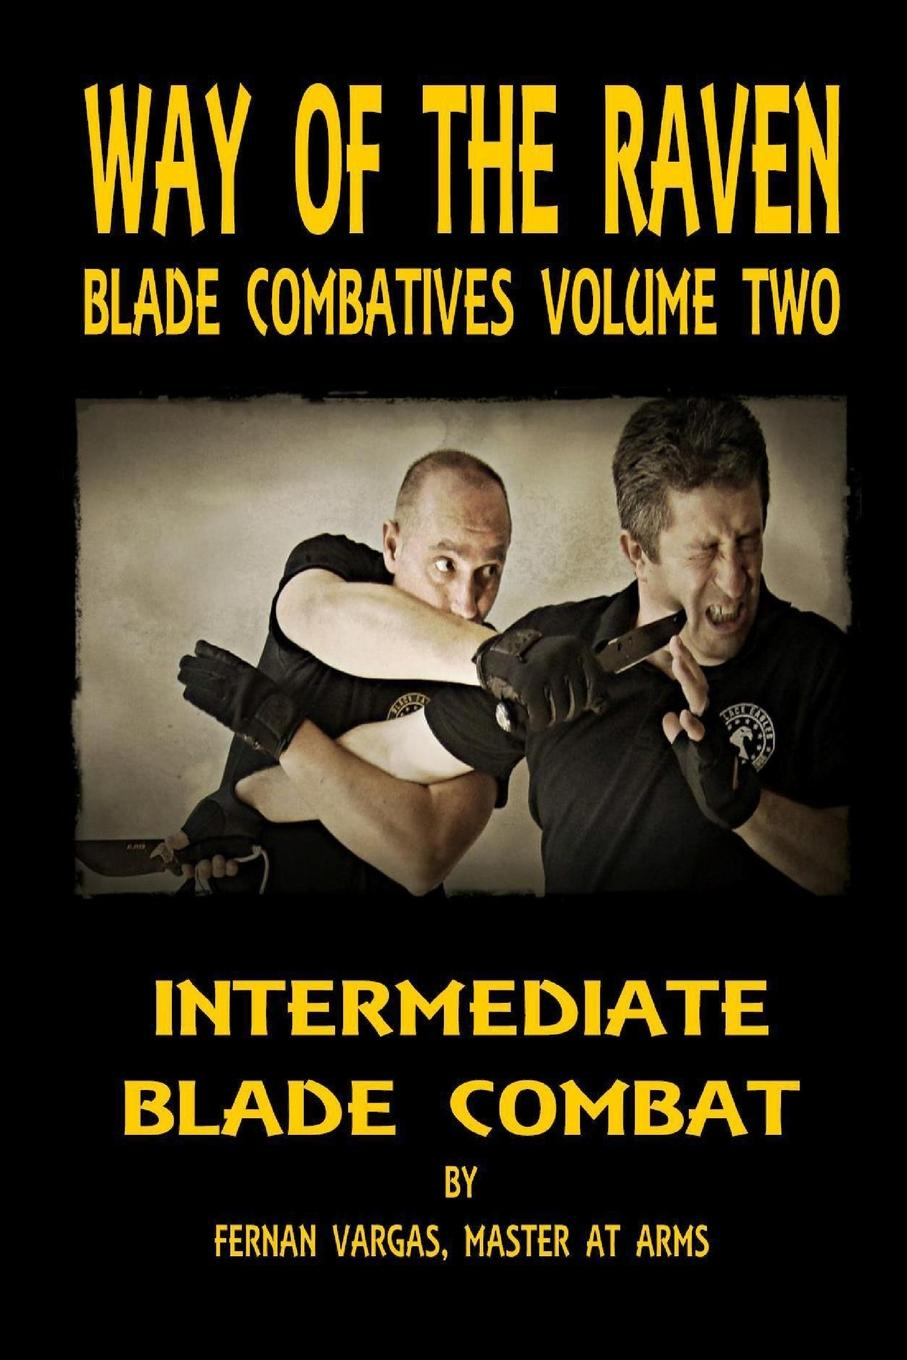 Fernan Vargas Way of the Raven Blade Combatives. Intermediate Blade Combat fernan vargas joseph truncale surviving the active killer